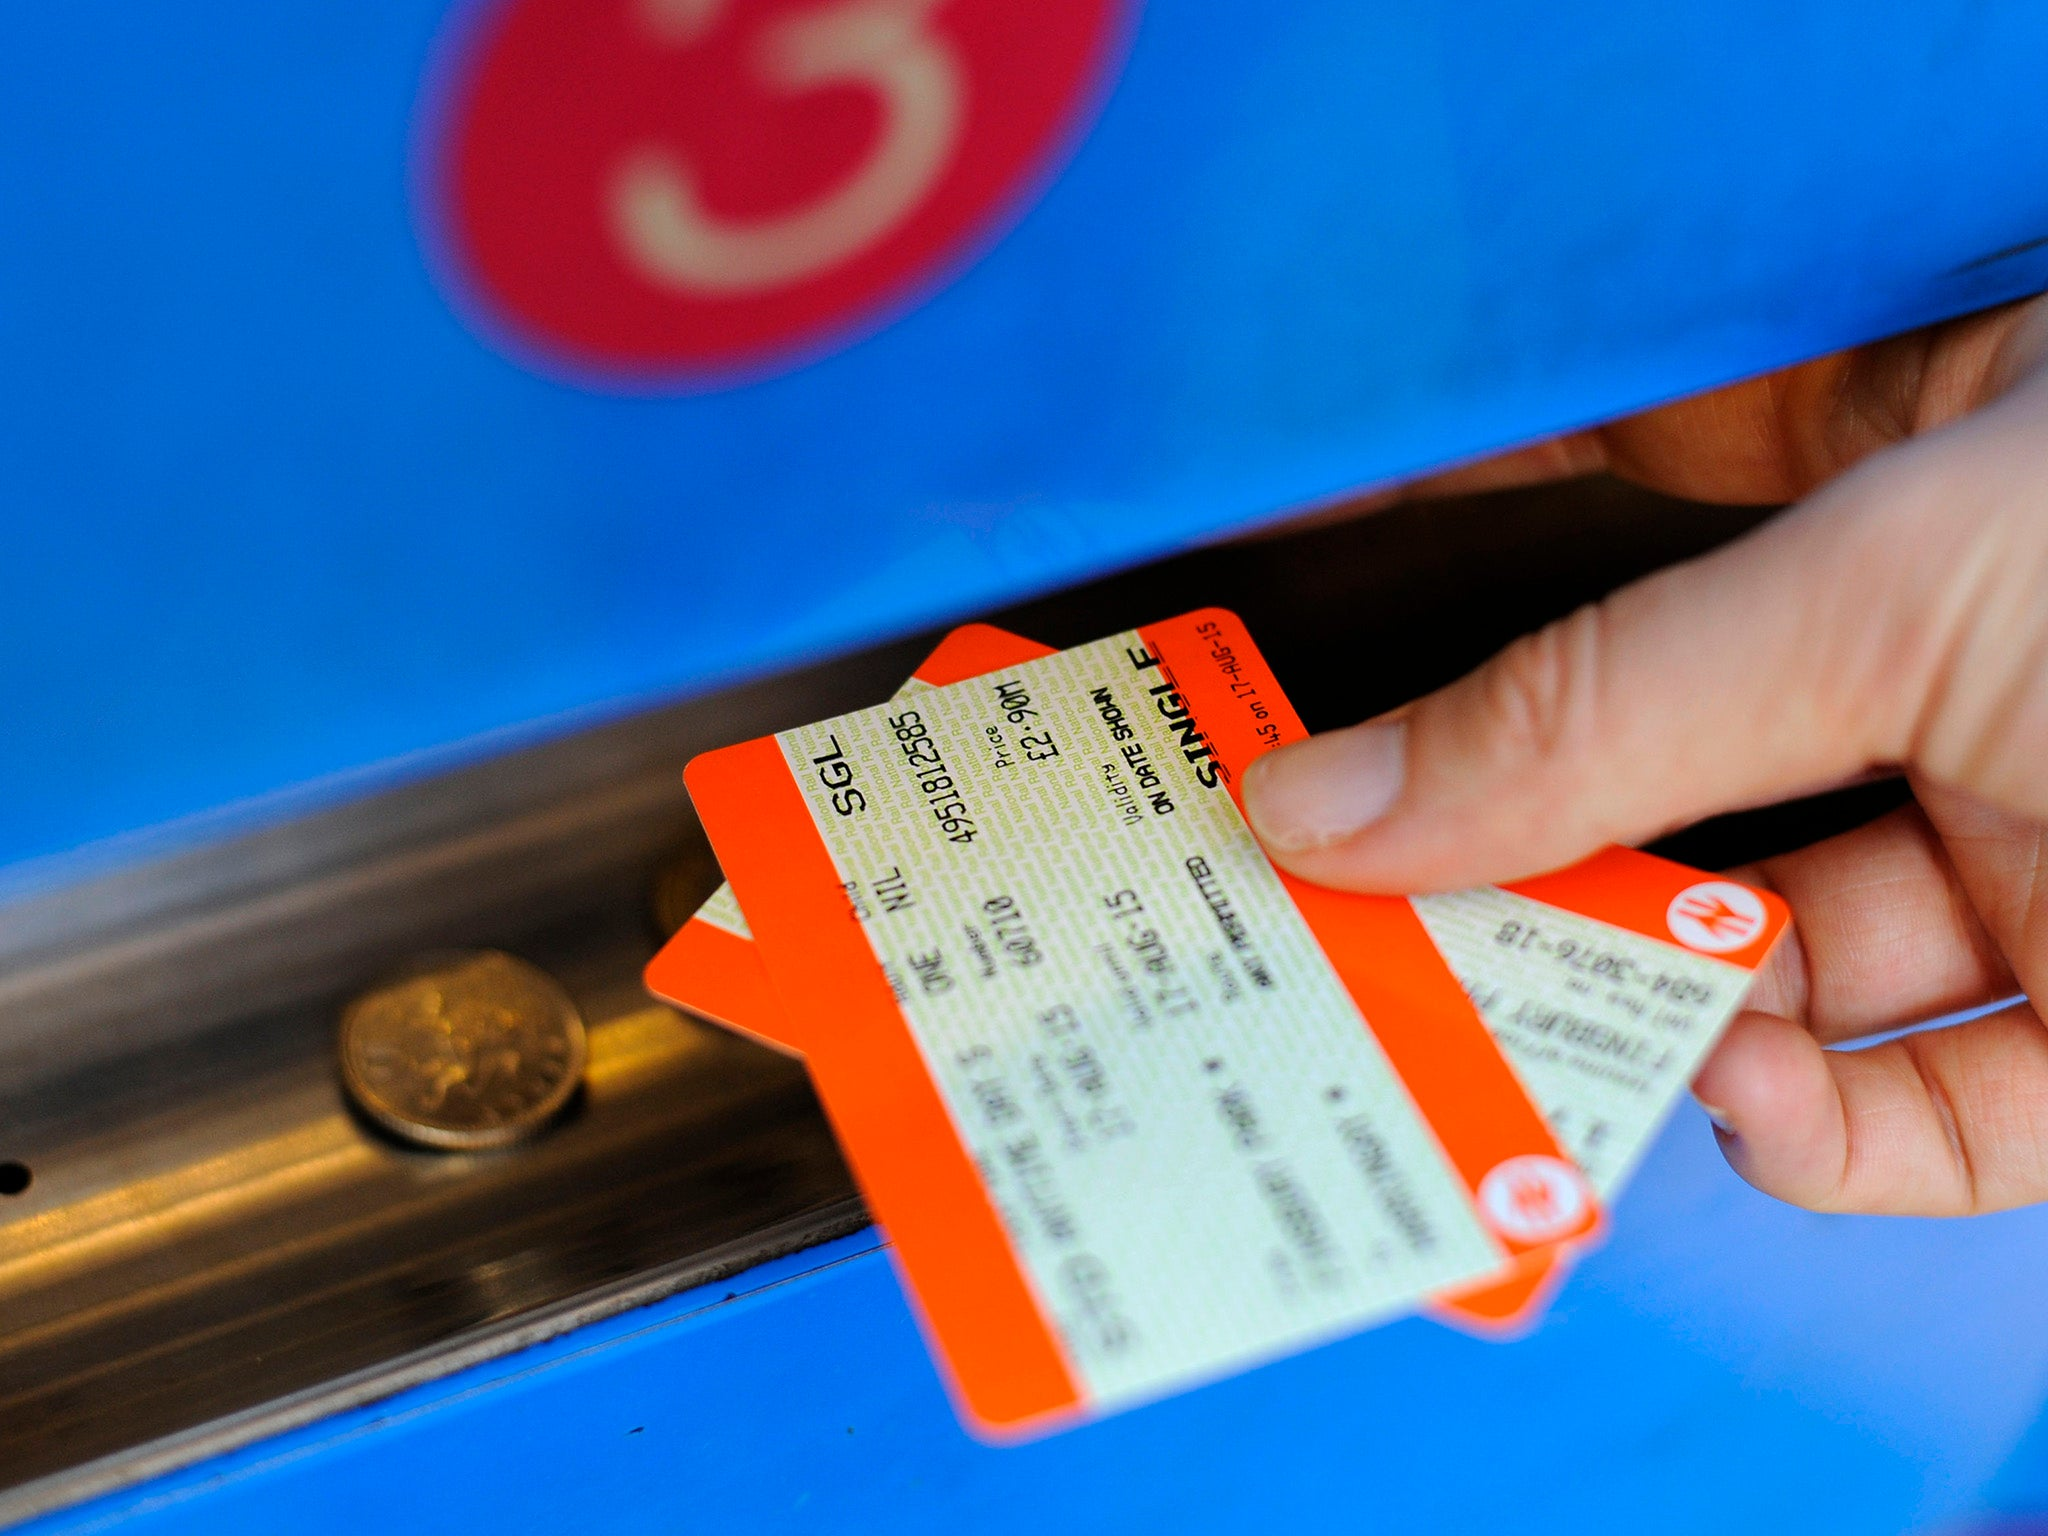 UK rail travel: Two thirds of commuters think train journeys are not good value for money, survey finds